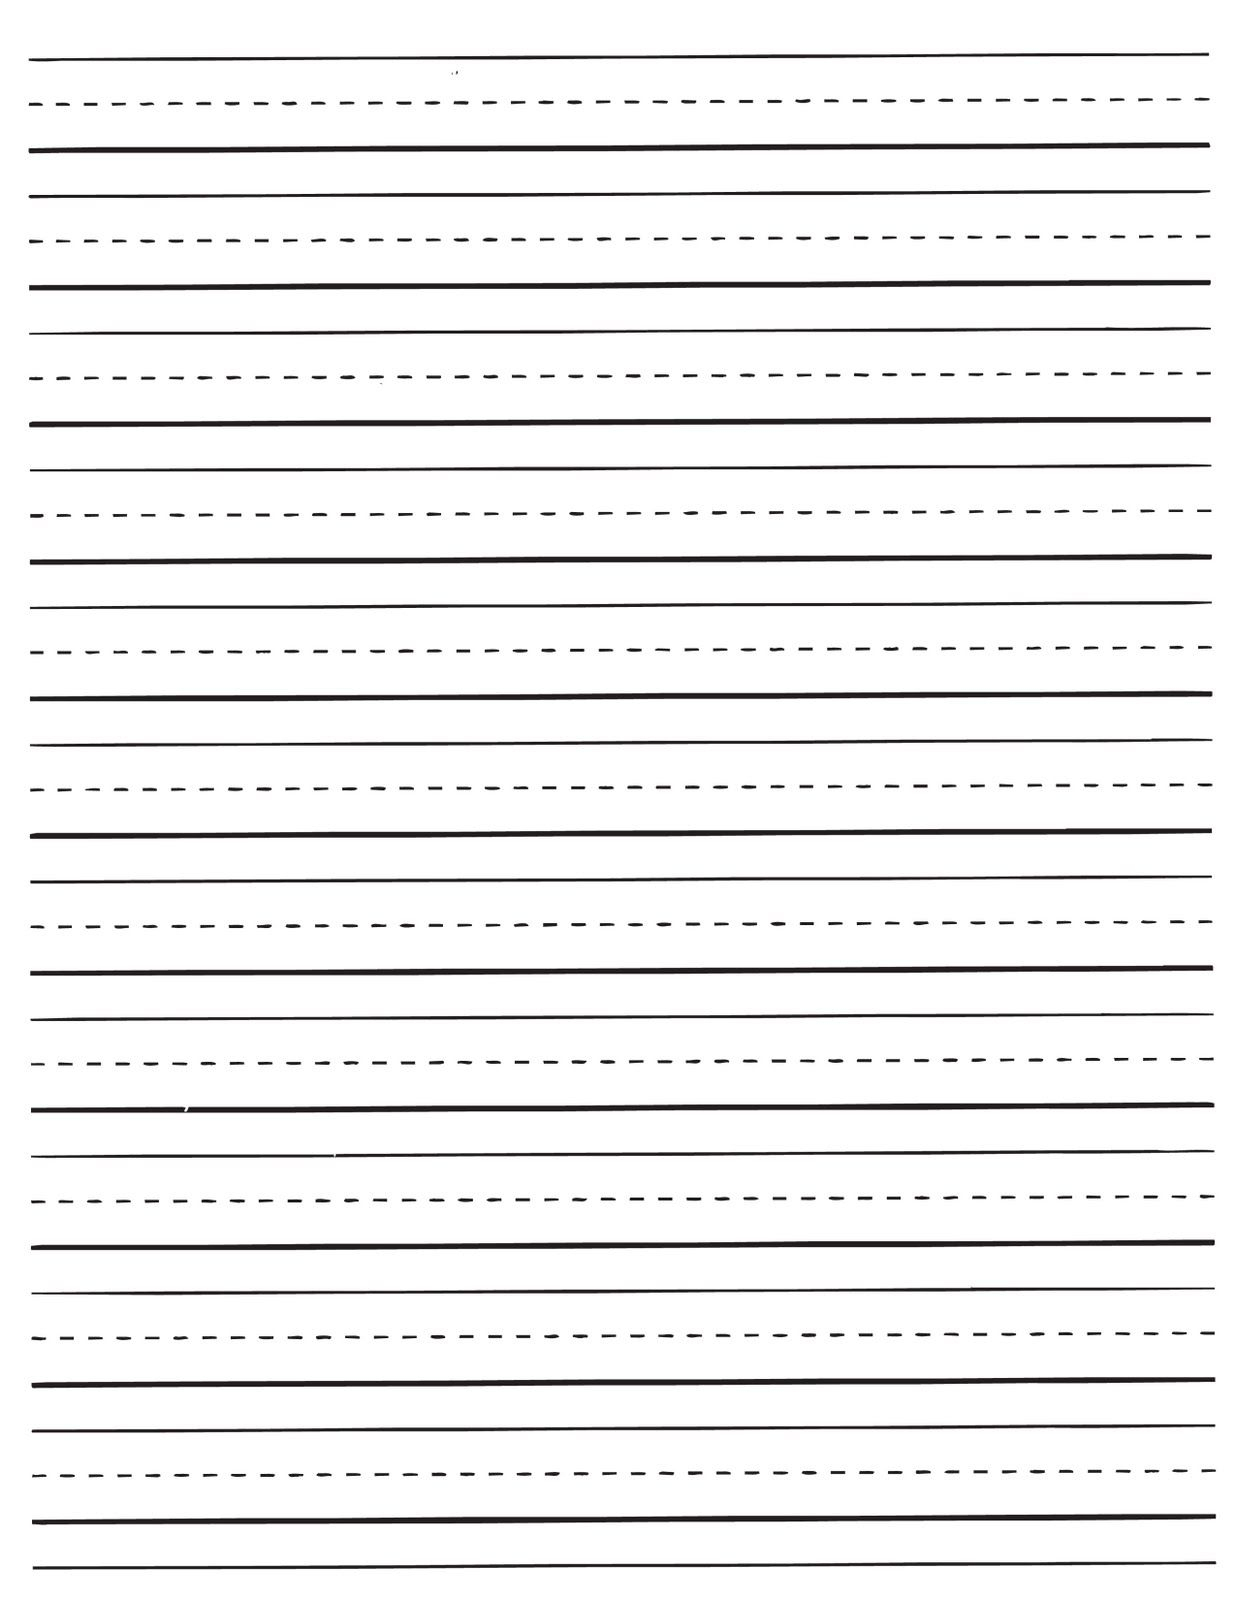 Pinabigail Robertson On Their First Teacher. | Pinterest - Elementary Lined Paper Printable Free